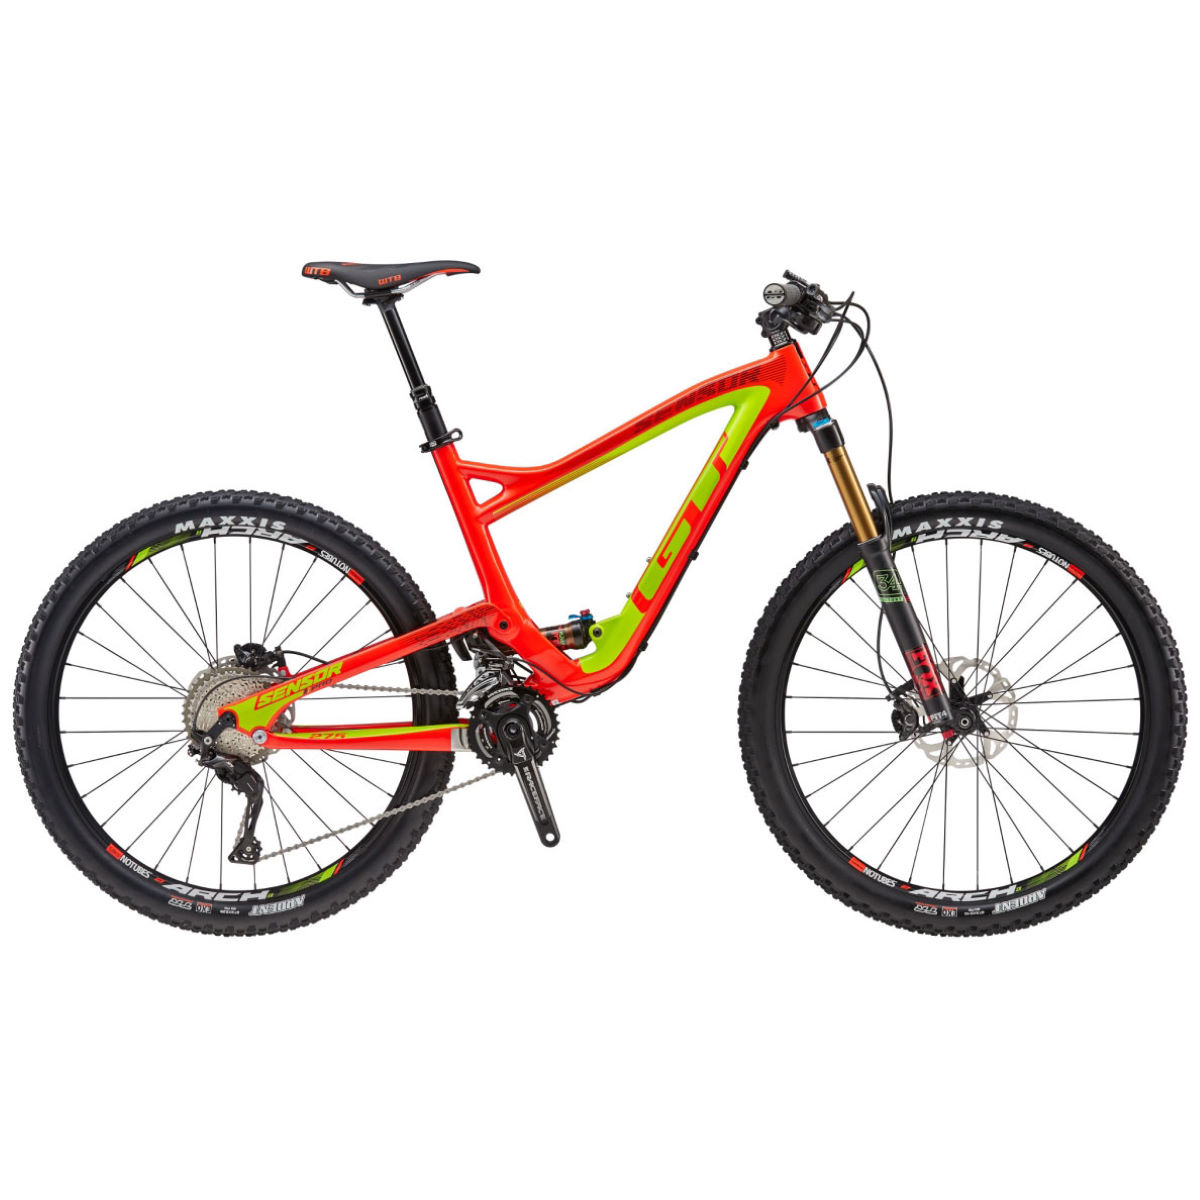 VTT GT Sensor Carbon Pro (2016) - Medium Stock Bike Jaune VTT tout suspendu